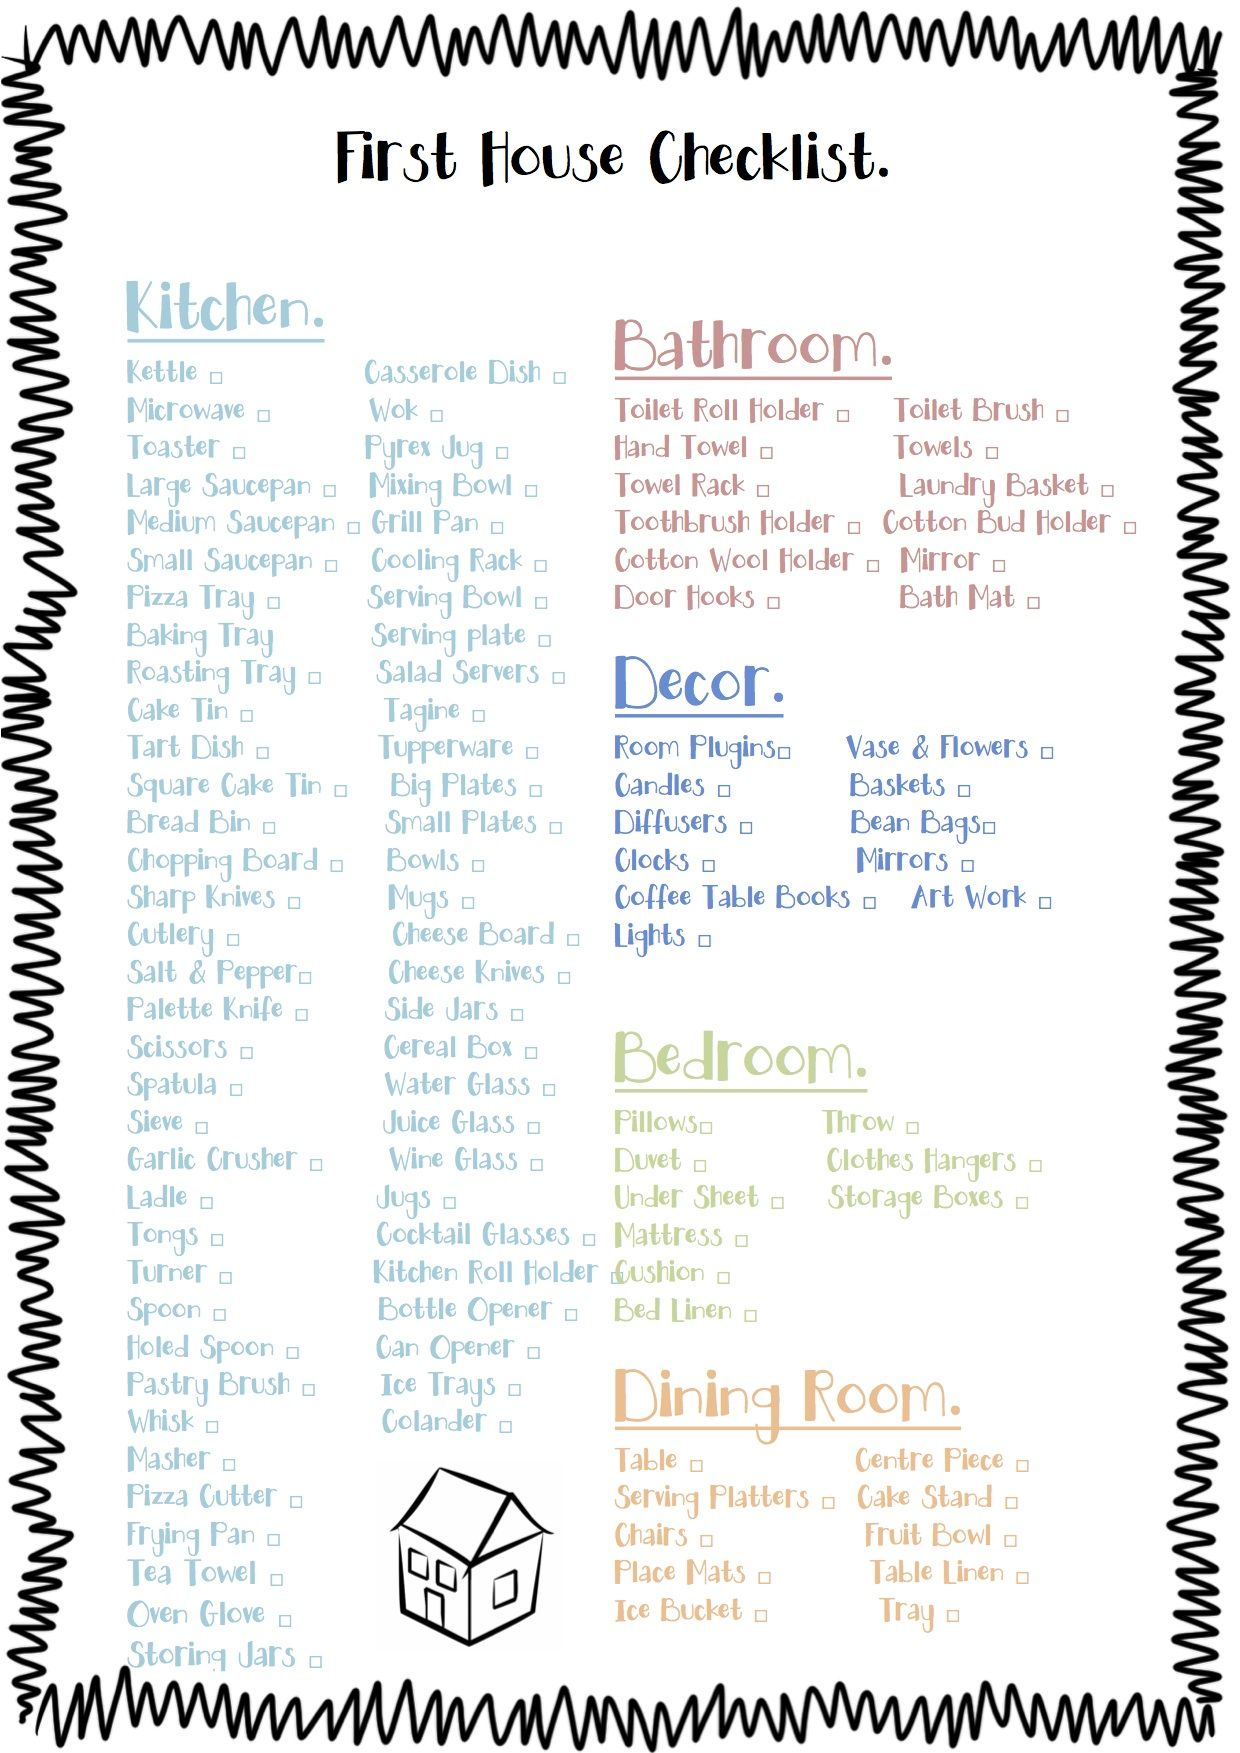 Free Printable Check List For The Essentials To Buy For A First House  (minus The